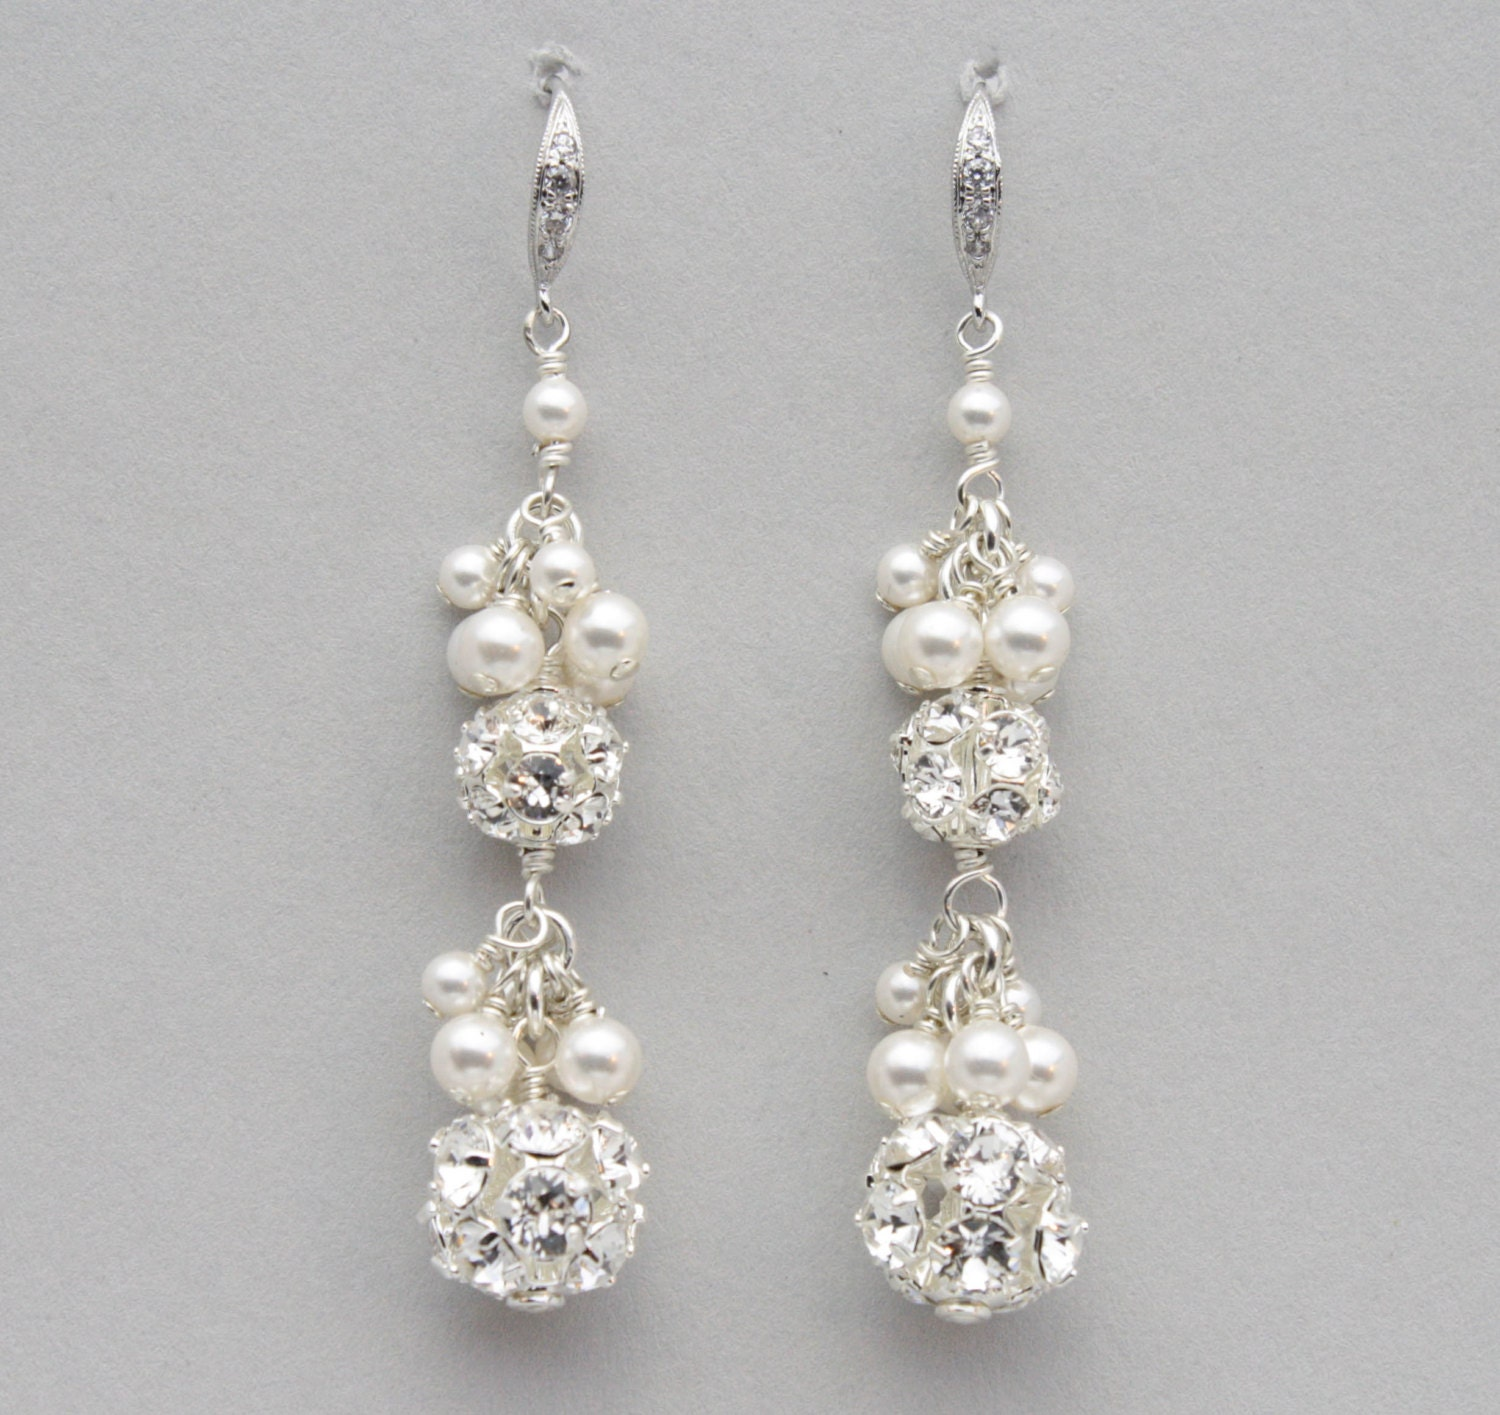 Rhinestone And Pearl Cluster Earrings Long Pearl Bridal